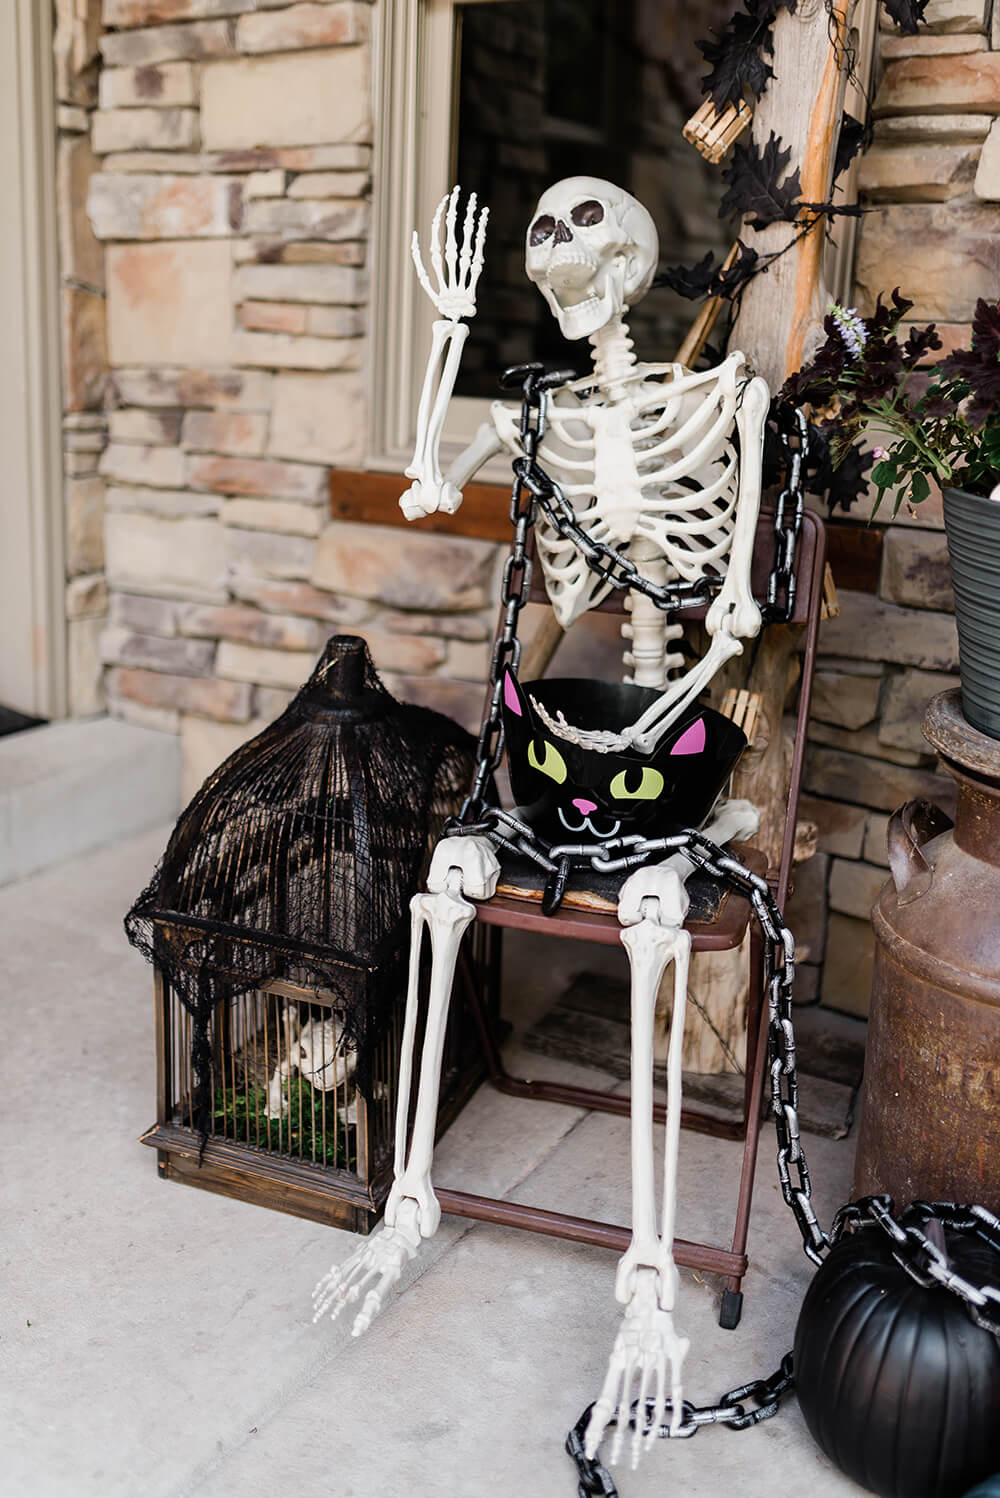 Skeleton candy bowl guard front porch decoration